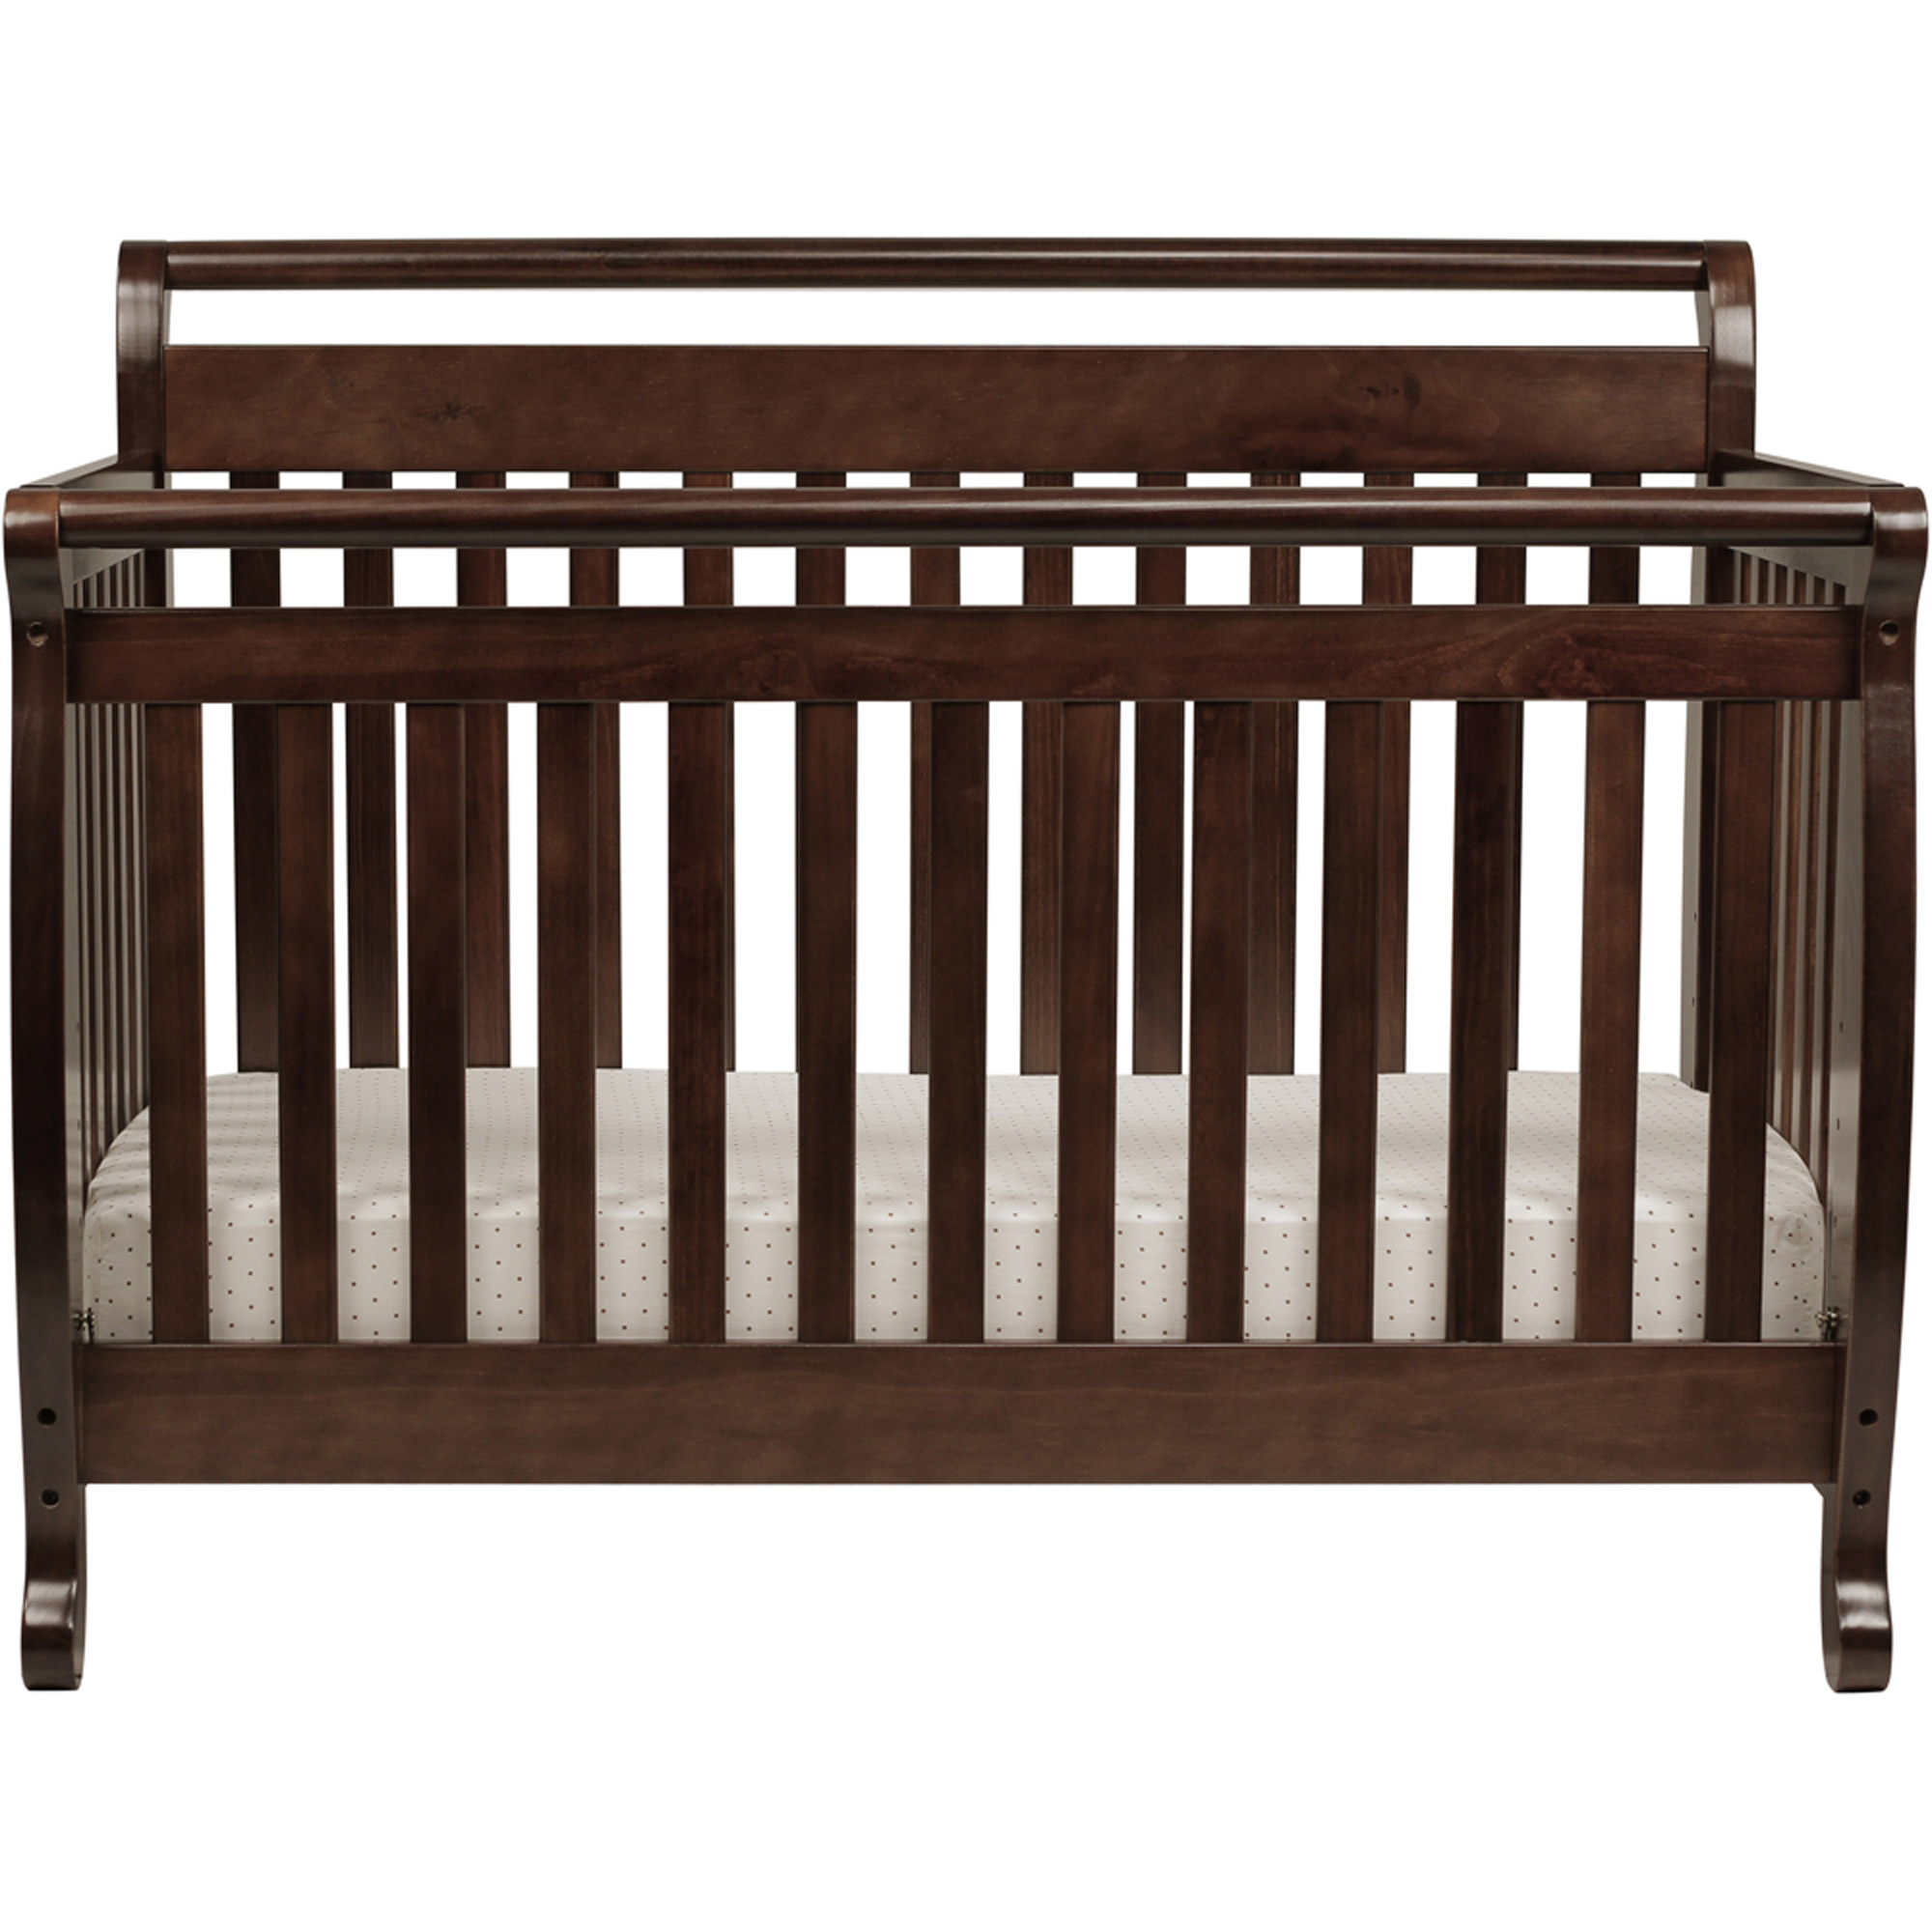 davinci emily 4-in-1 convertible crib ebony black - walmart